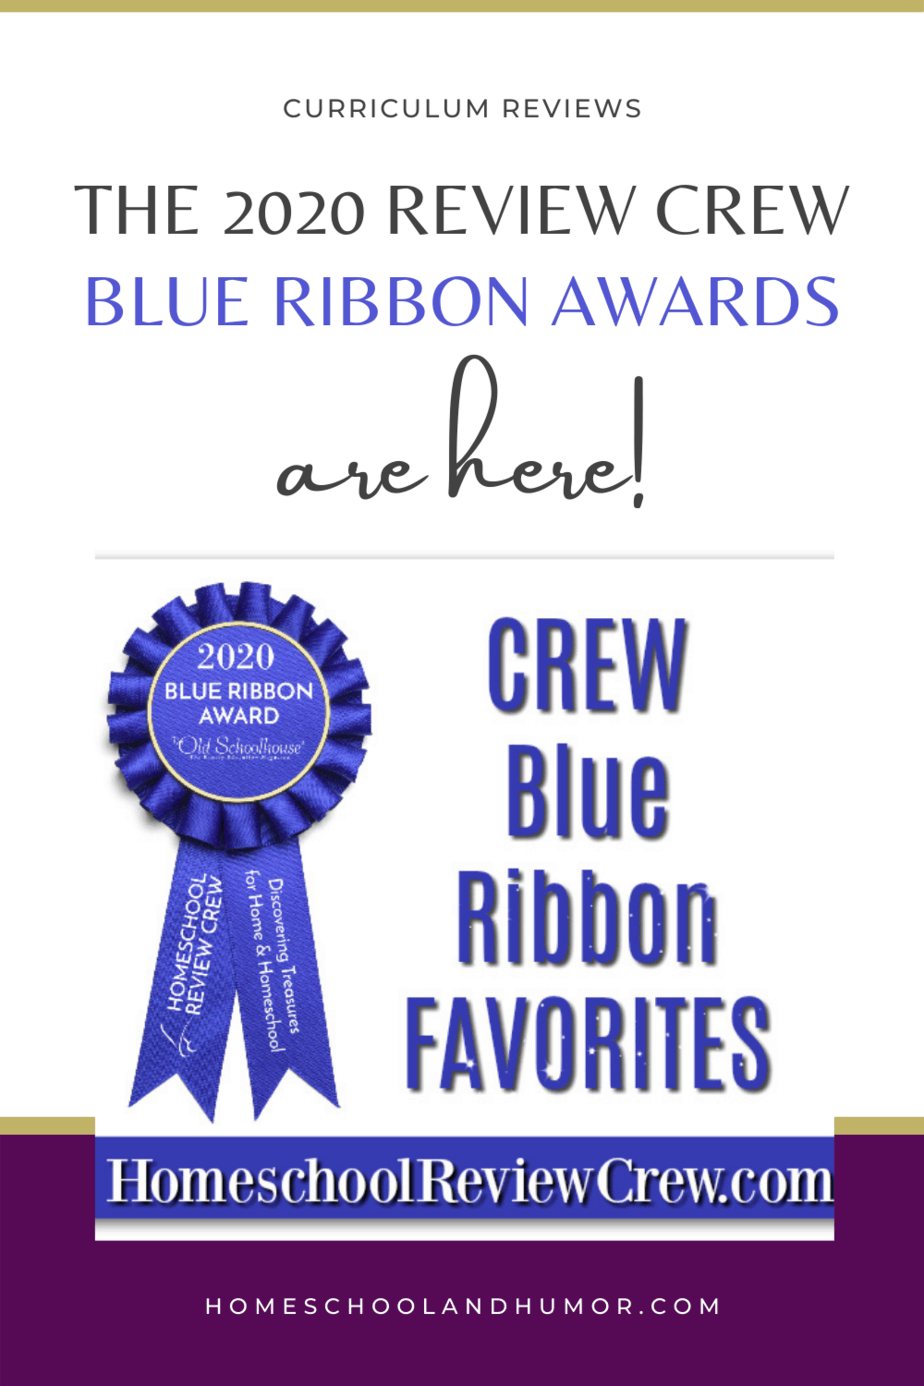 My Favorite Homeschool Curriculums: The 2020 Crew Blue Ribbon Awards